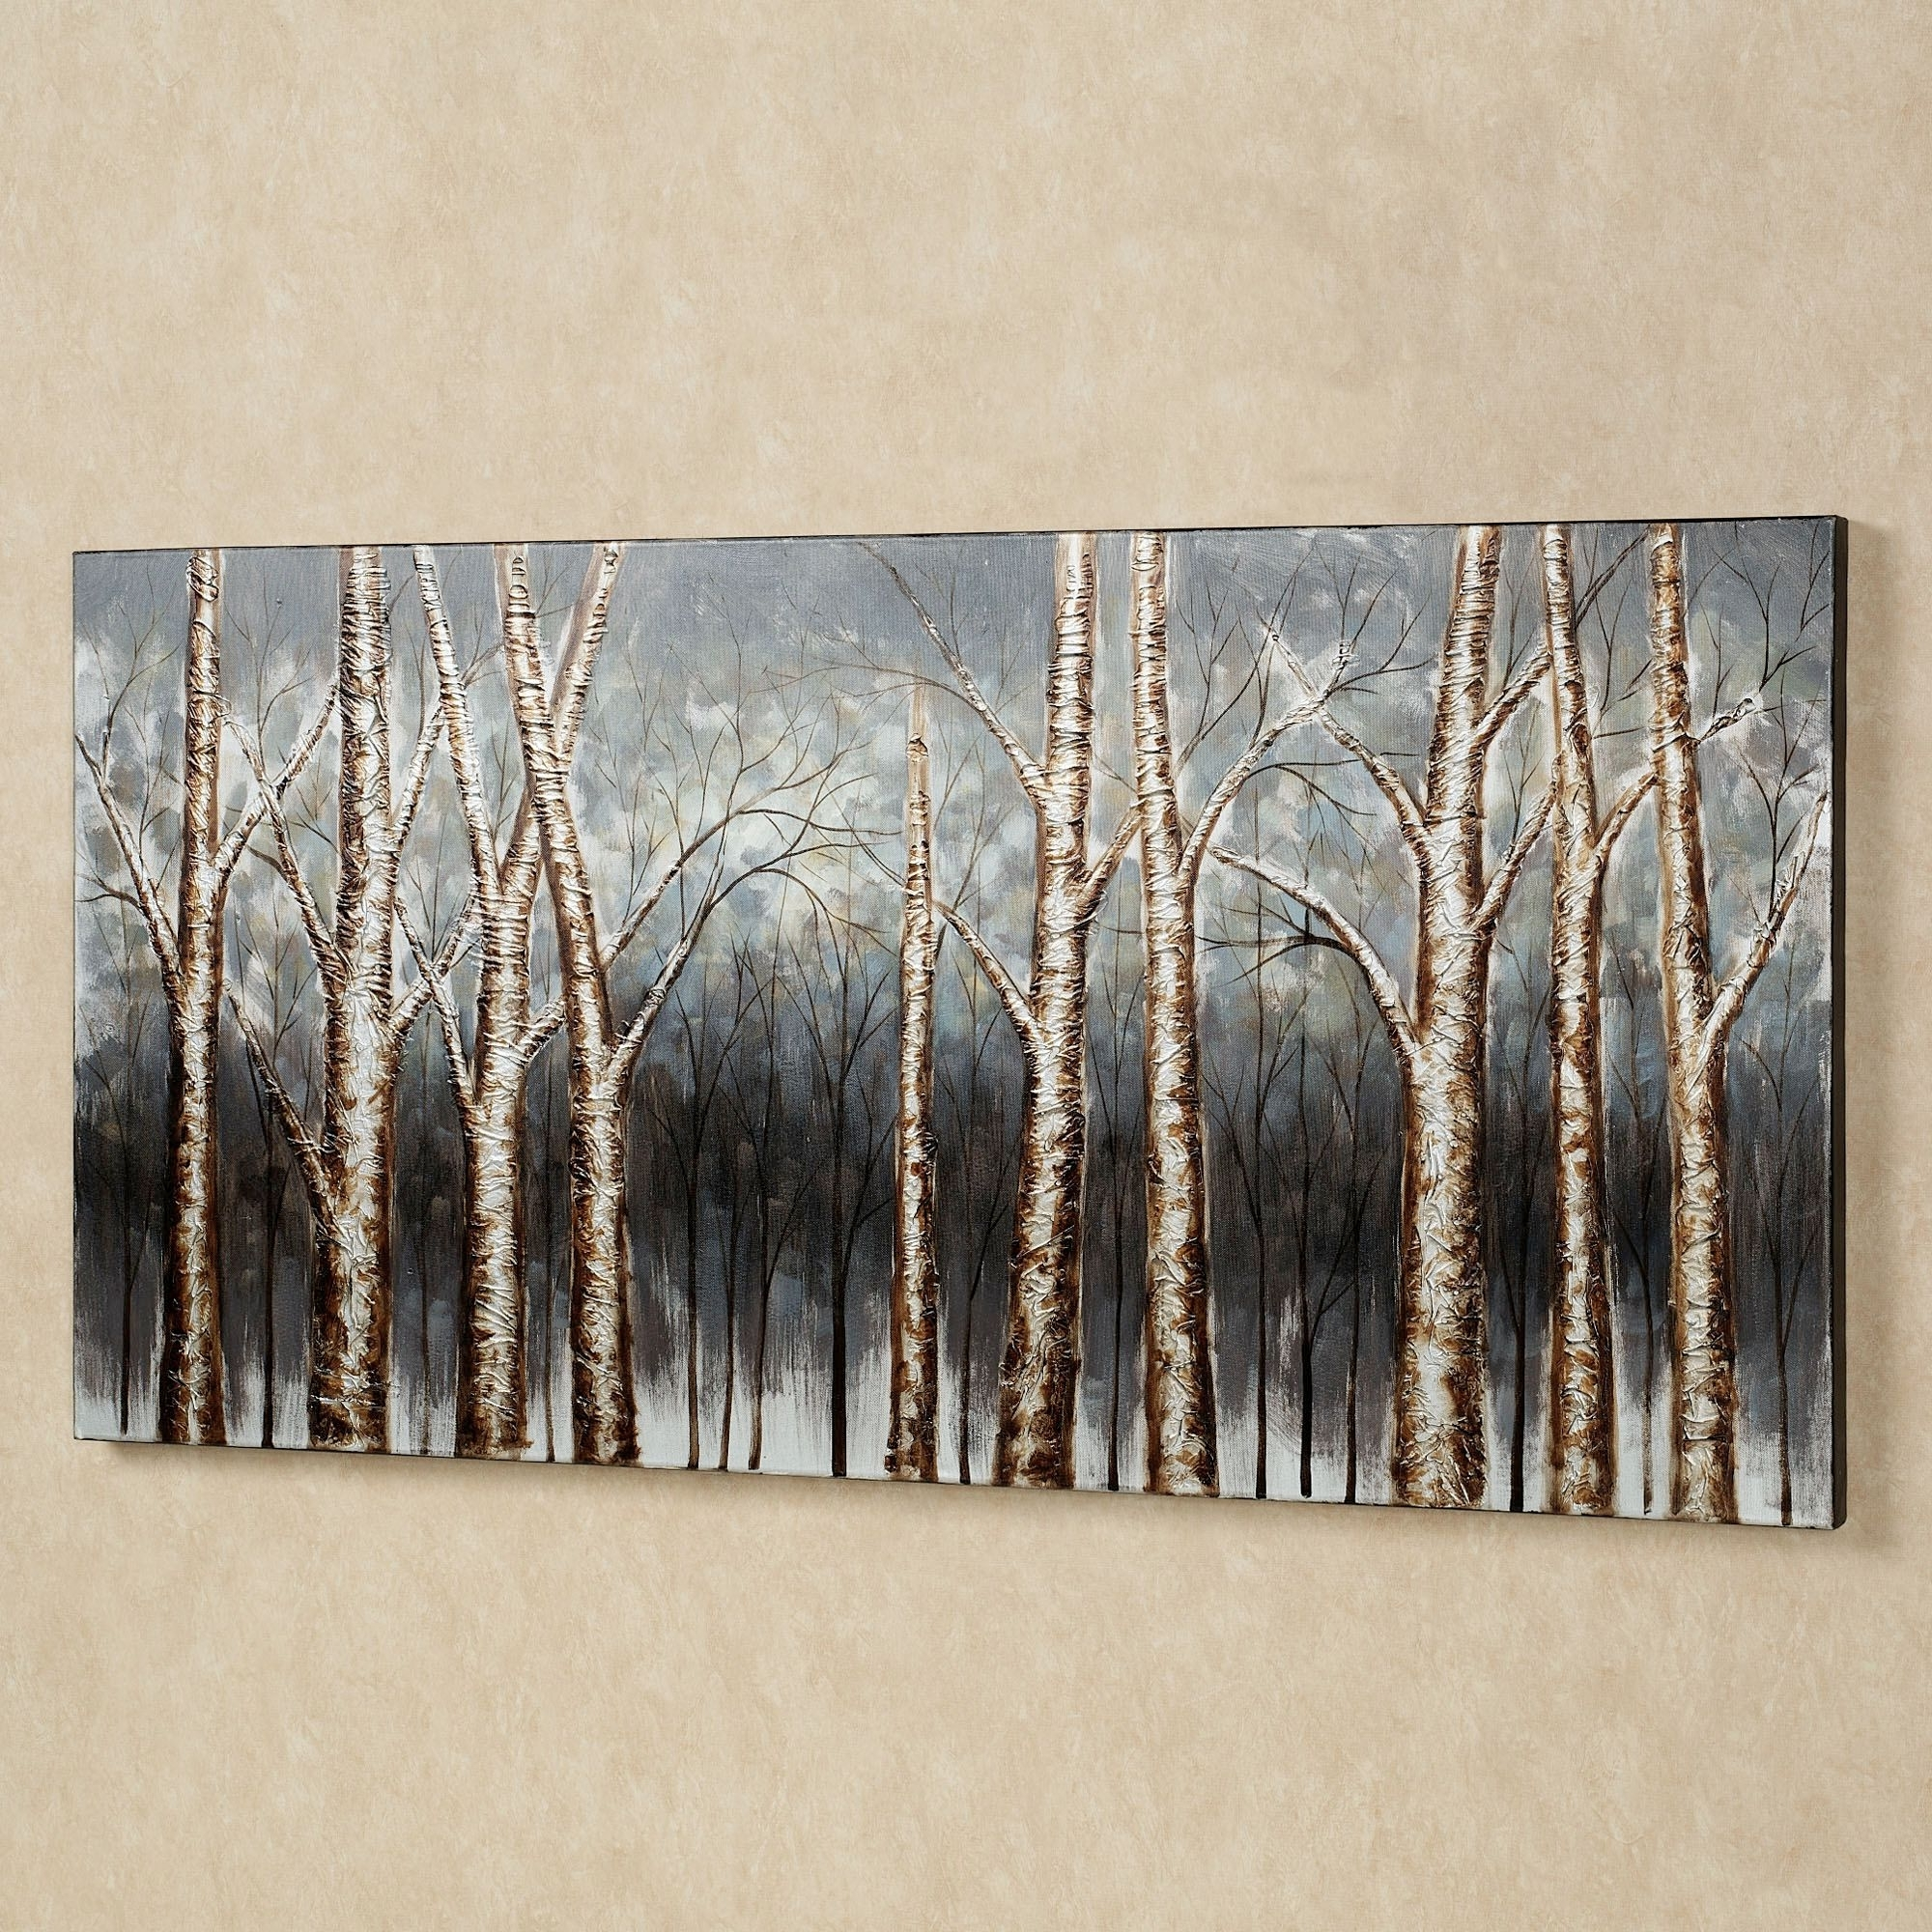 Wall Art Decor: Cream Wallpaper Aspen Trees Wall Art Sample With Widely Used Aspen Tree Wall Art (View 14 of 15)